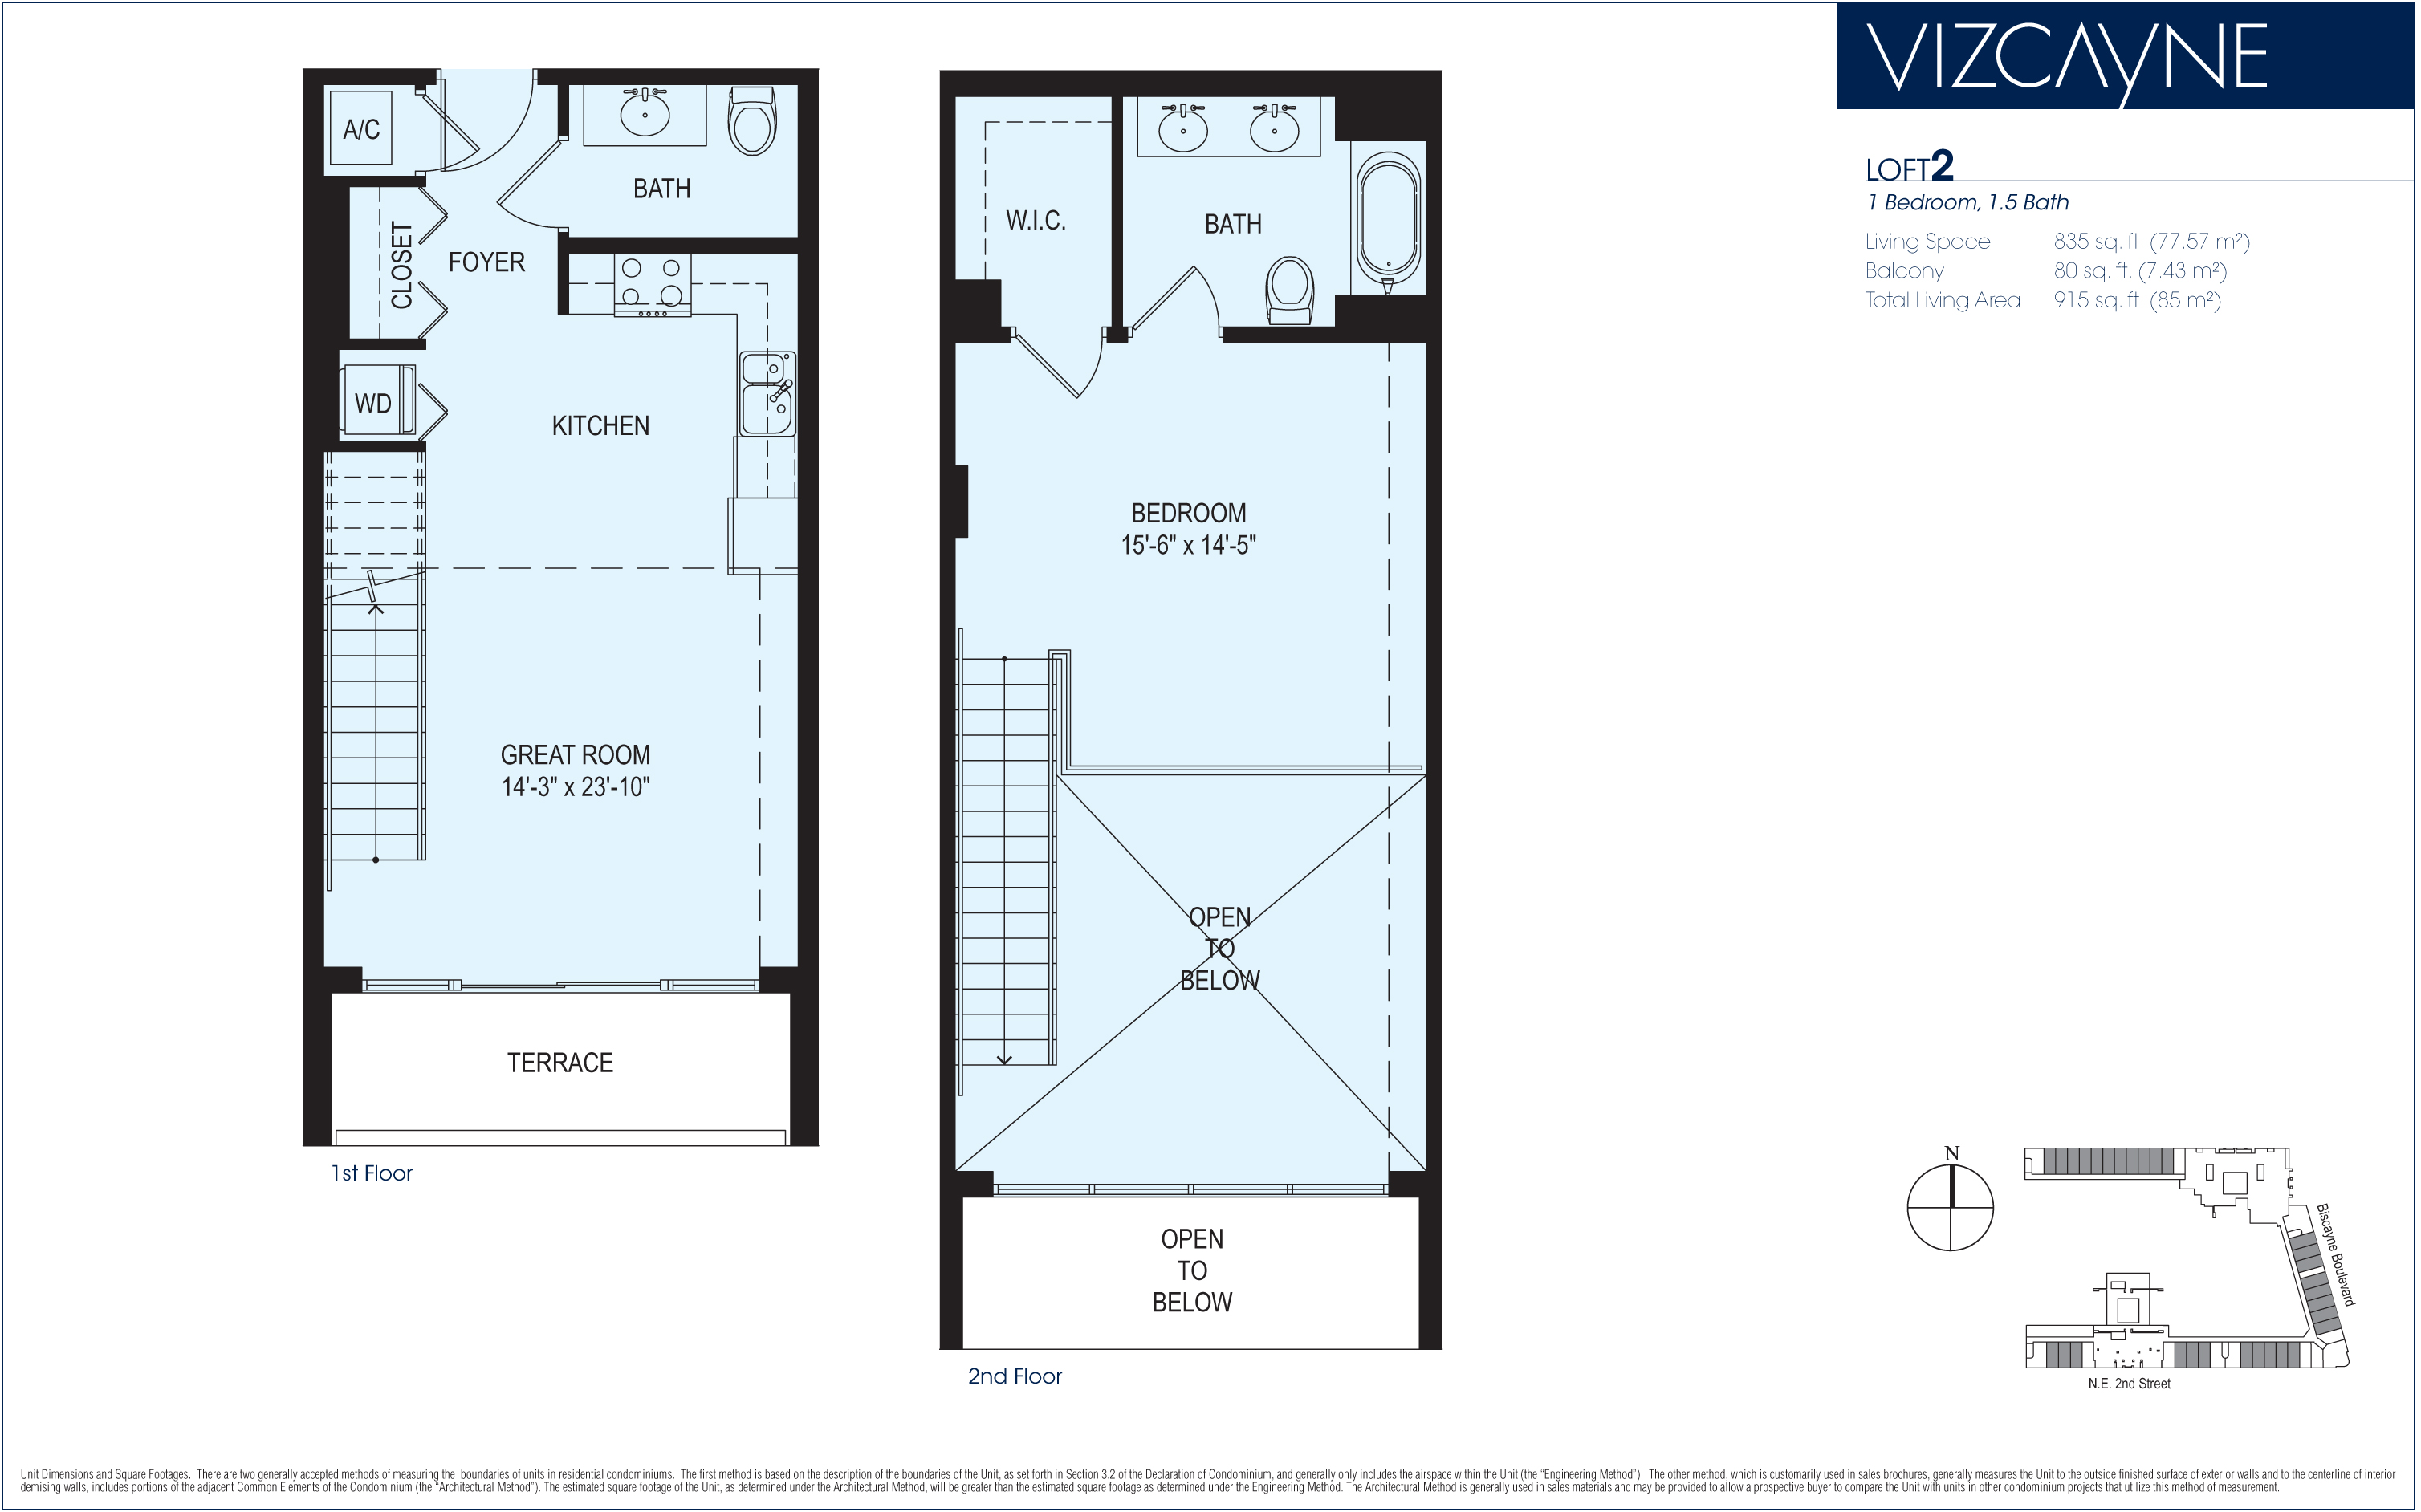 Vizcayne tower floorplans miami for Floor plans florida